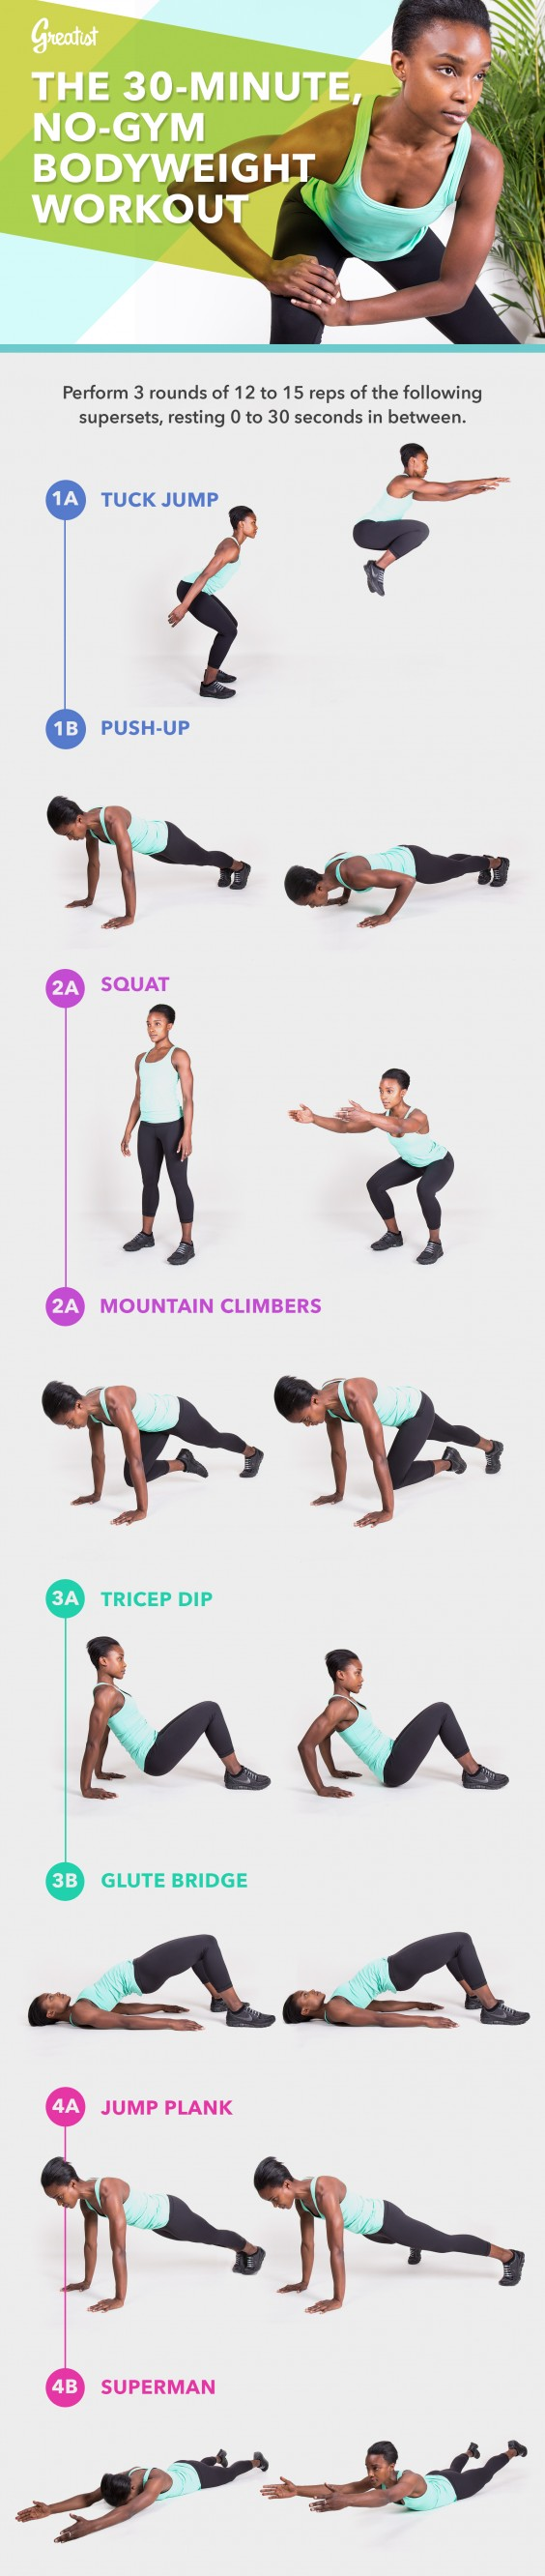 30-Minute Home Bodyweight Workout Graphic